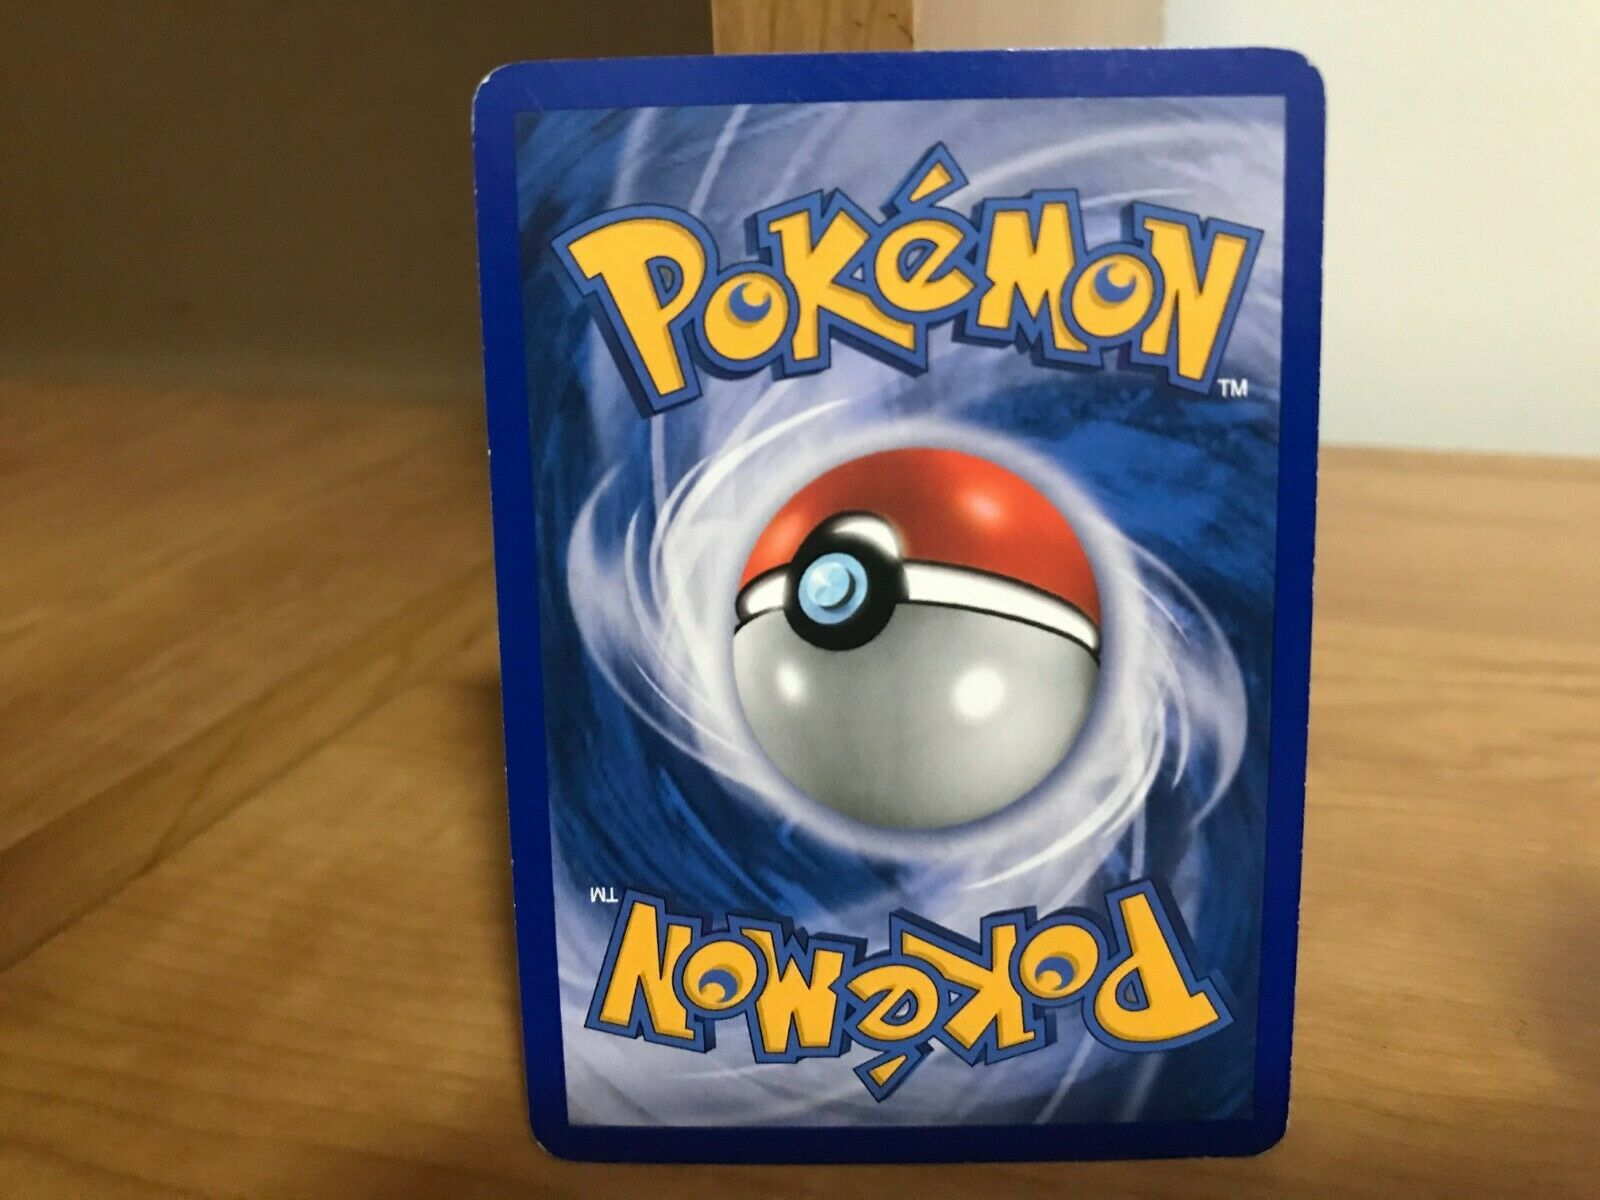 Pokemon Card Natu 63/115 EX Unseen Forces in Good Condition! - Image 6